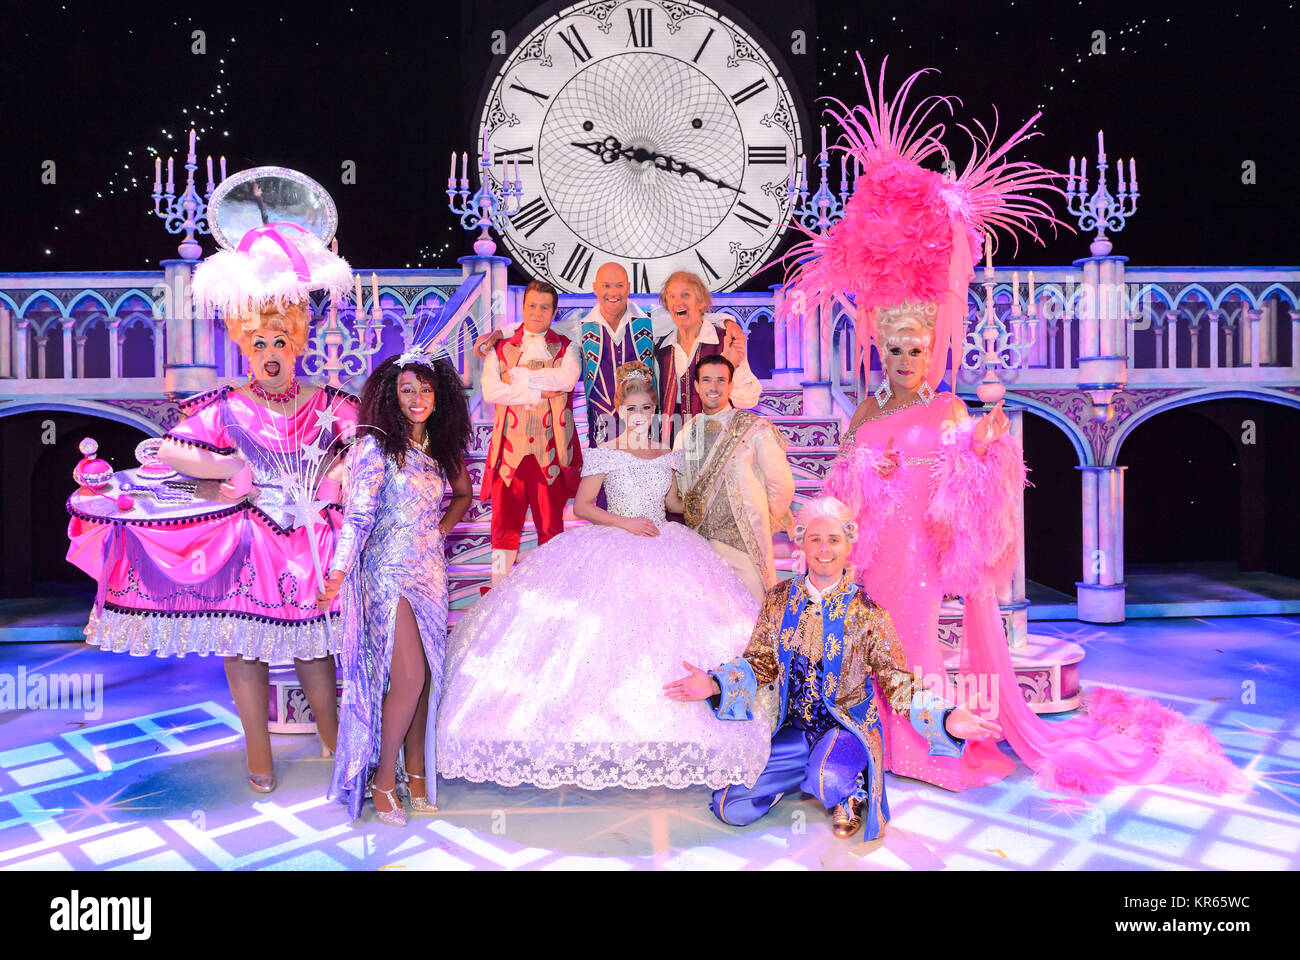 The Birmingham Hippodrome, Birmingham, UK. 18thDecember, 2017. Cinderella cast photocall.Pictured are Cinderella Stock Photo